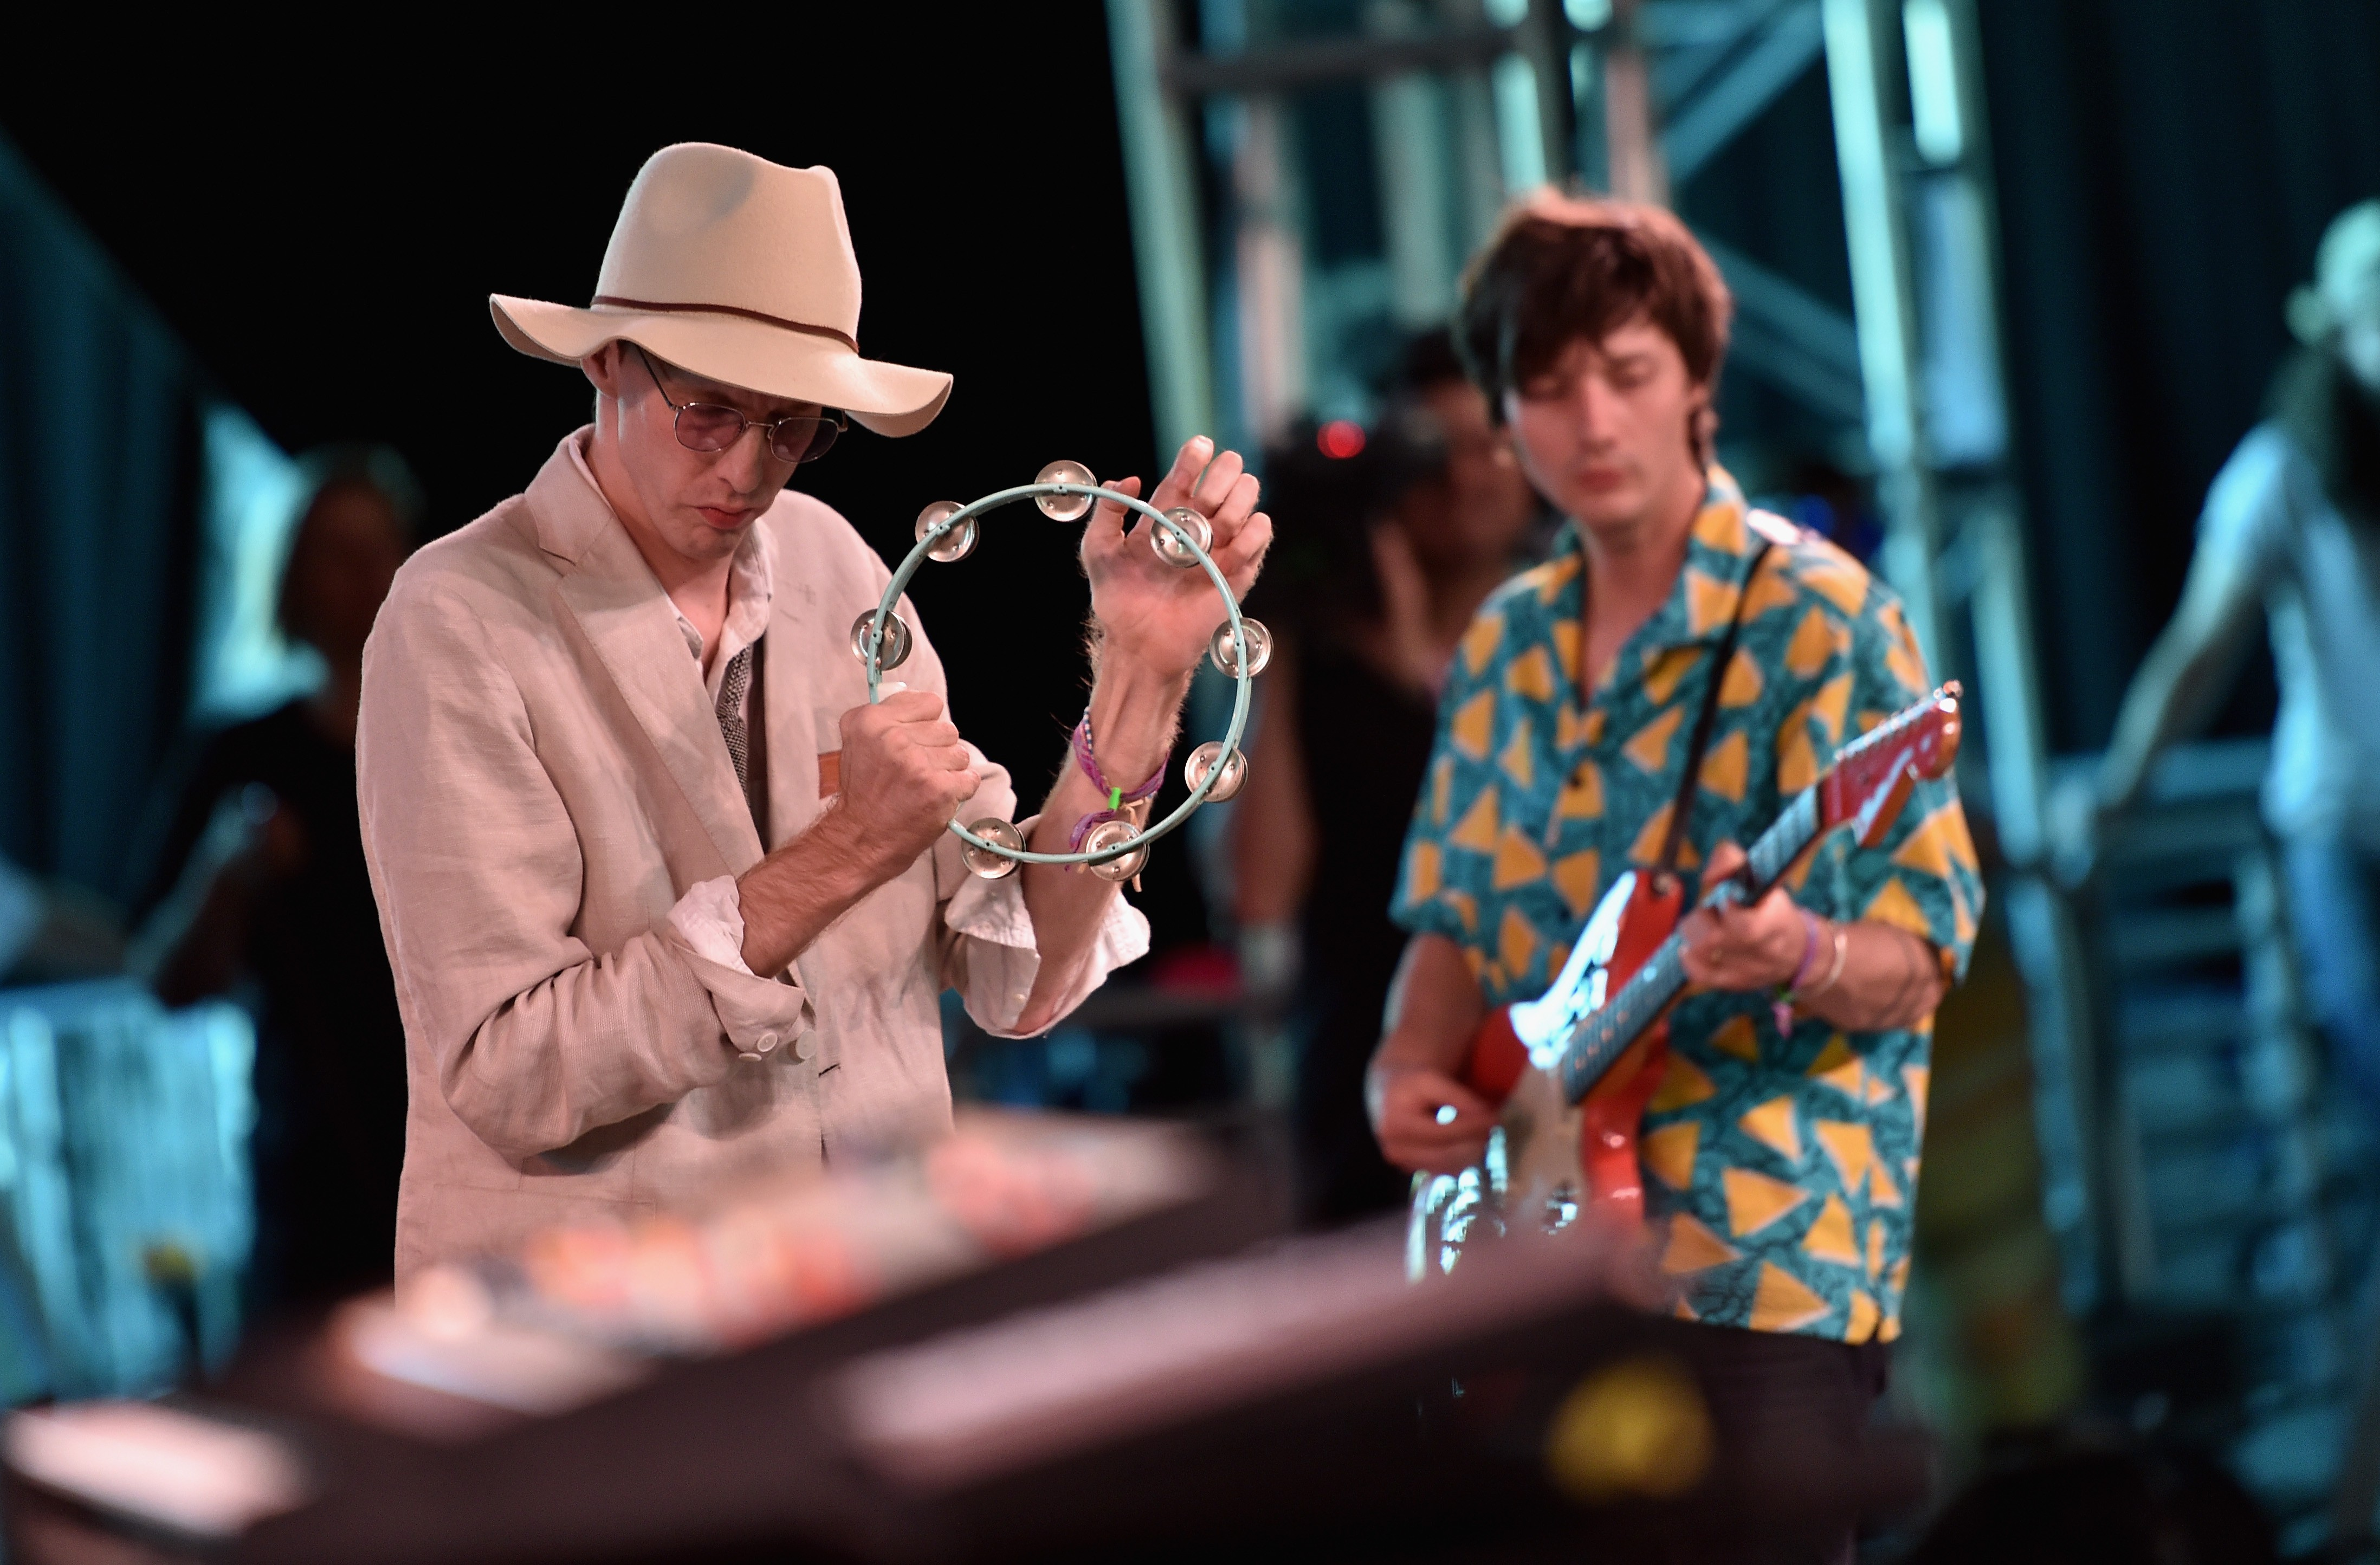 deerhunter perform new songs and are joined by animal collective